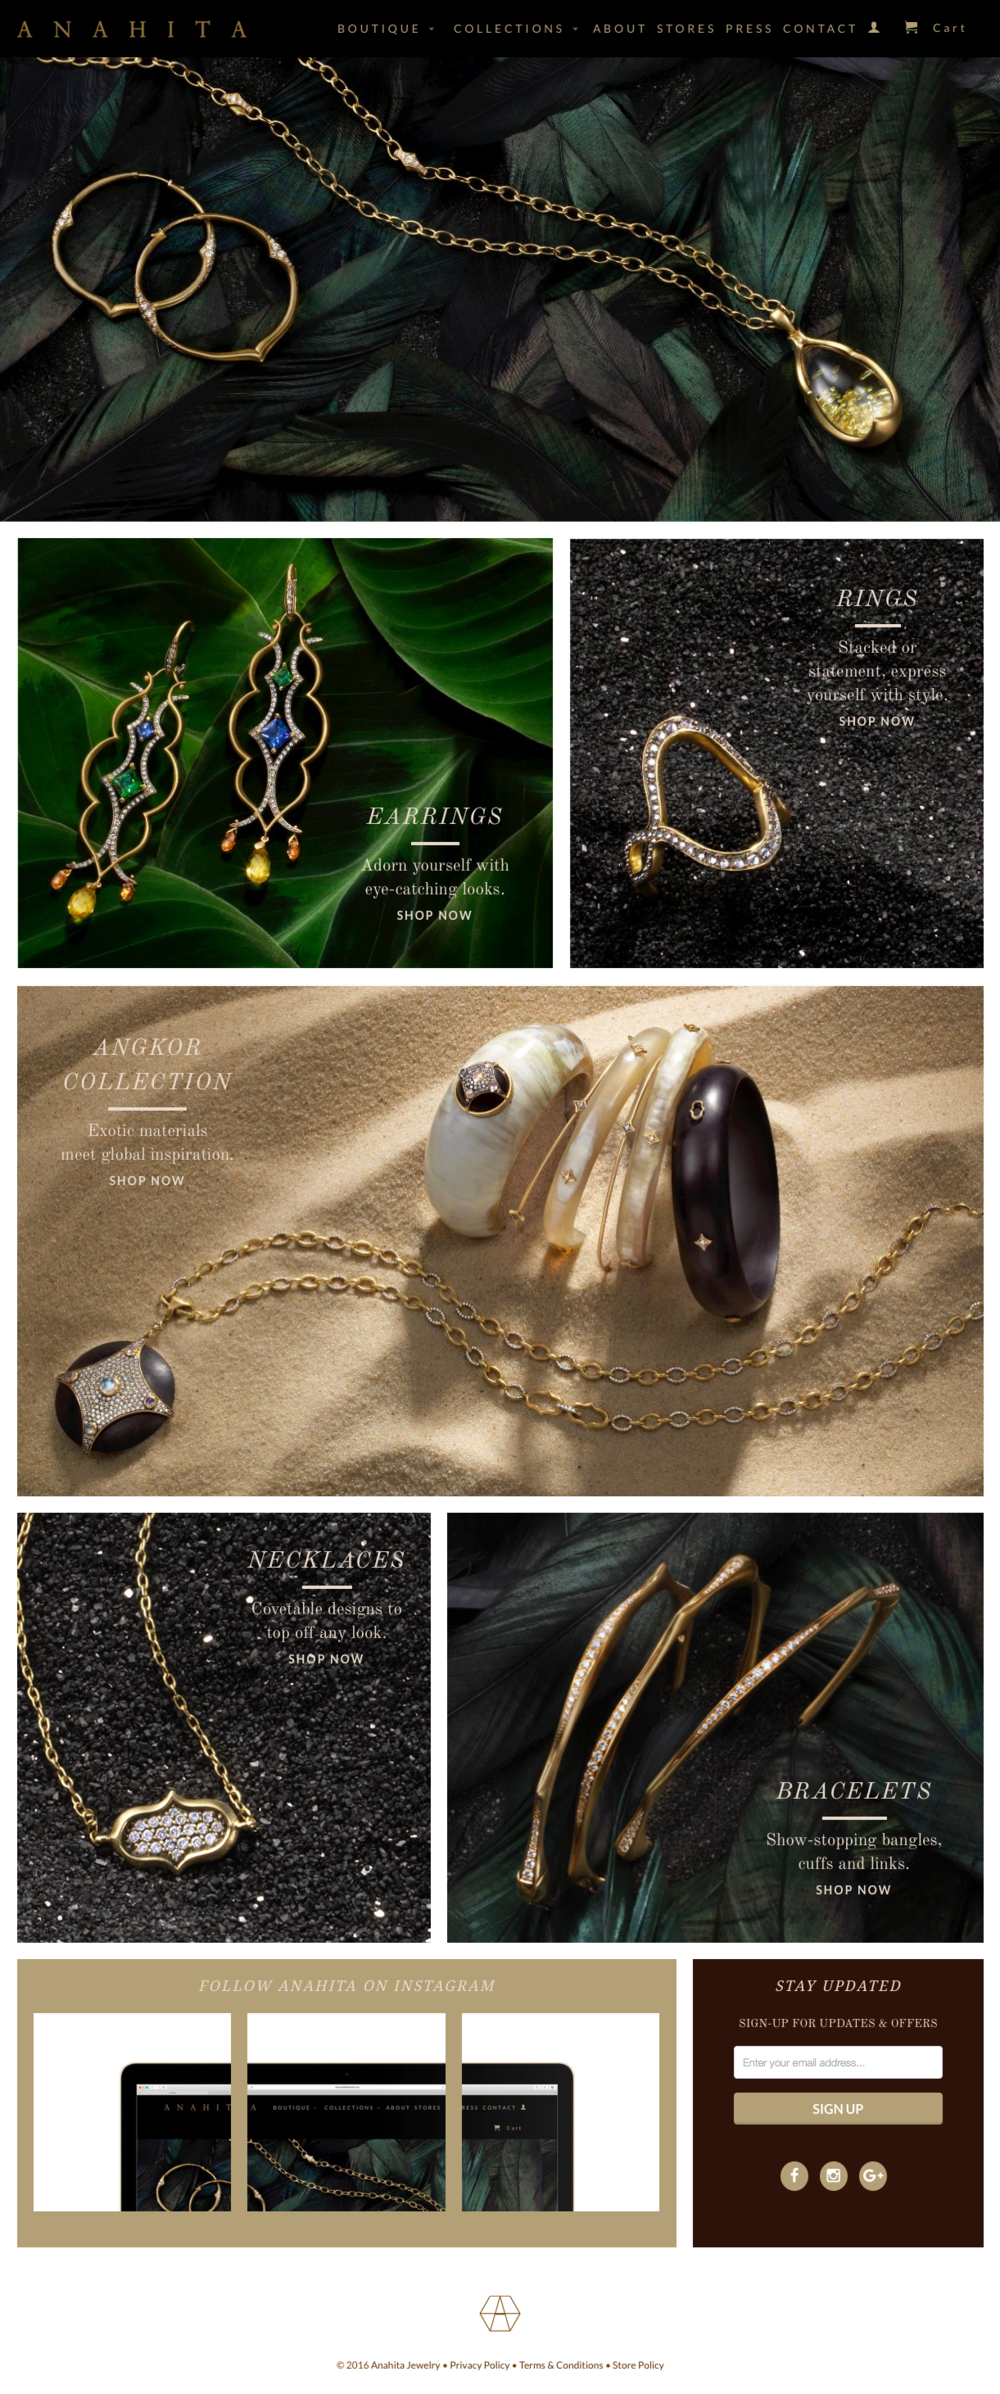 ANAHITA     Website copy, product naming    New-York based jewelry designer Anahita Stein was in need of a full overhaul of her website, complete with fresh brand identity copy. Her 120+ piece was broken down into collections, which needed memorable names that paid tribute to their unique design inspiration and character.    visit